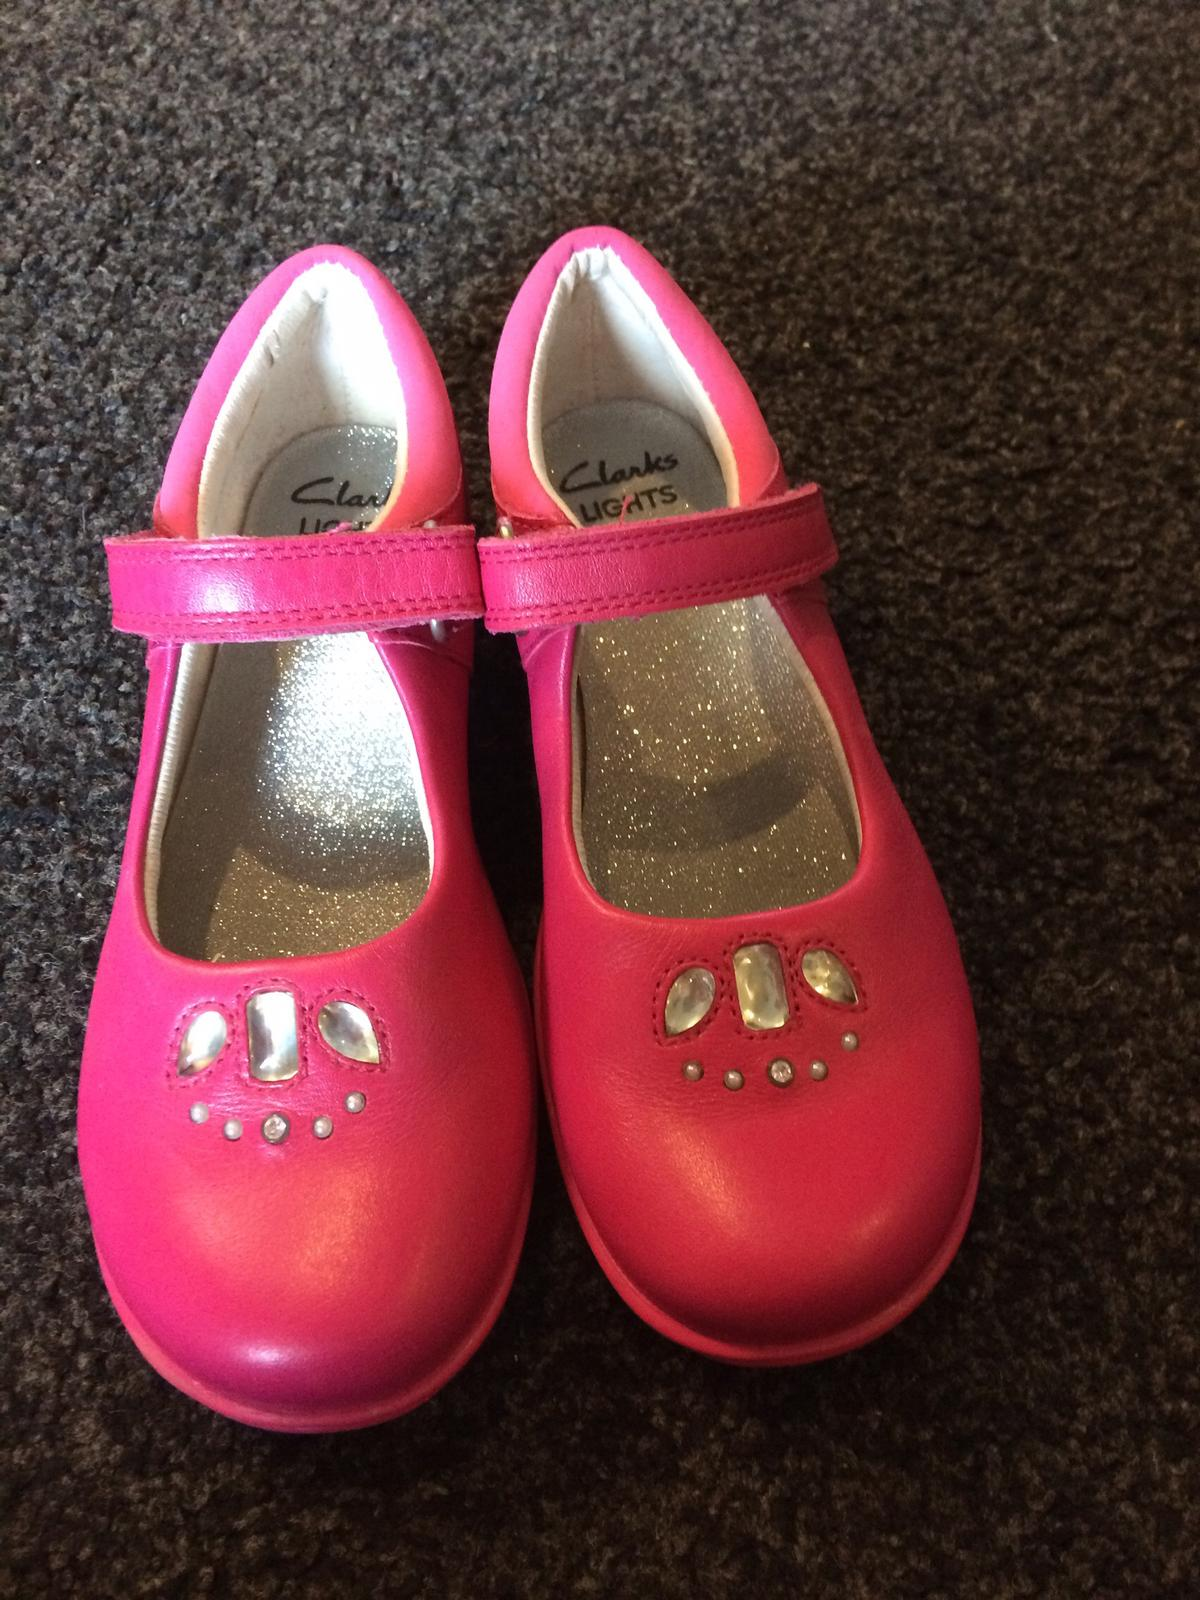 b383795e981 Light up shoes in SK2 Stockport for £8.00 for sale - Shpock